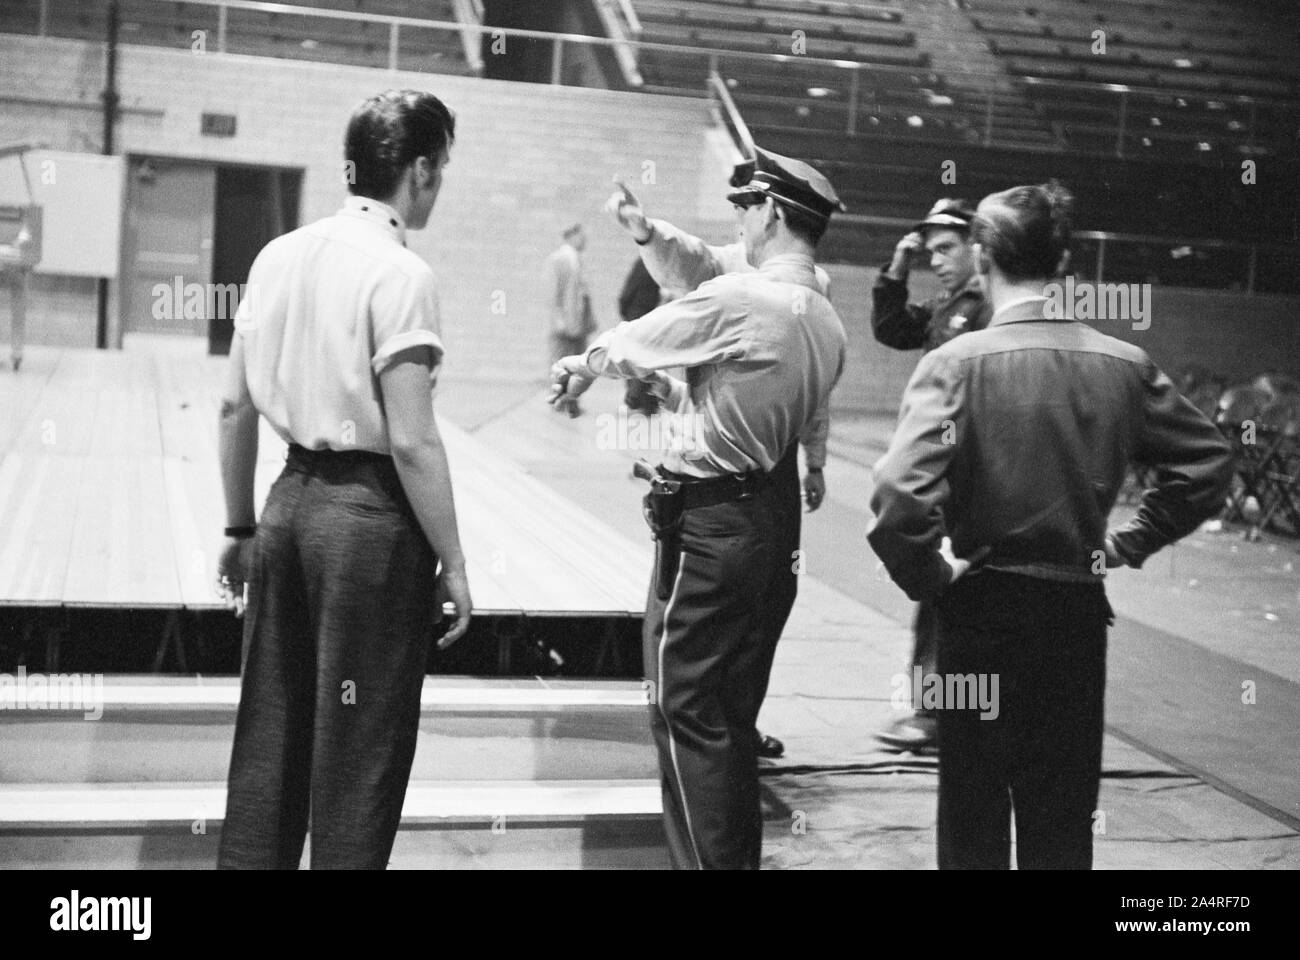 Elvis Presley speaks with police officers at the University of Dayton Fieldhouse, May 27, 1956. Stock Photo